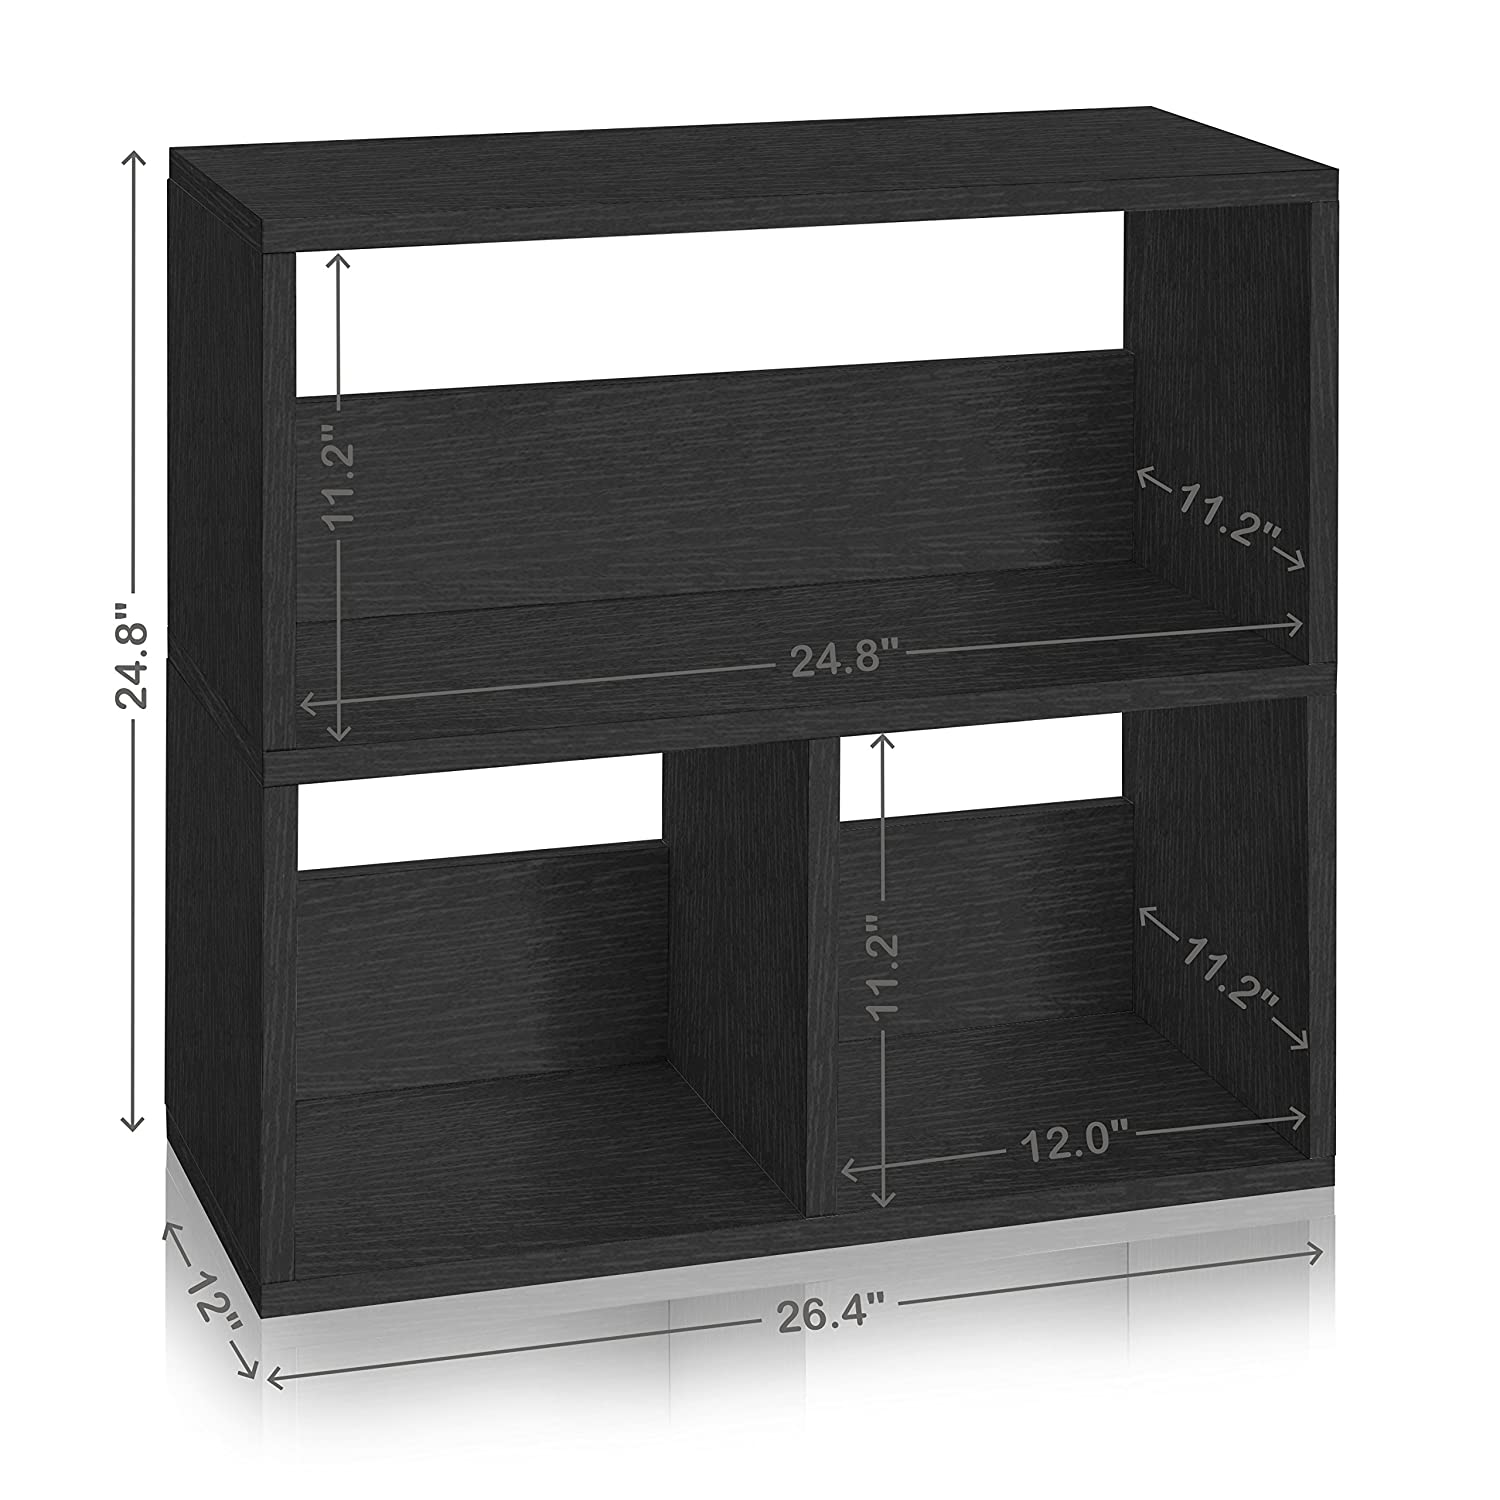 Amazoncom Way Basics Eco Friendly Collins Cubby Bookshelf And Organizer,